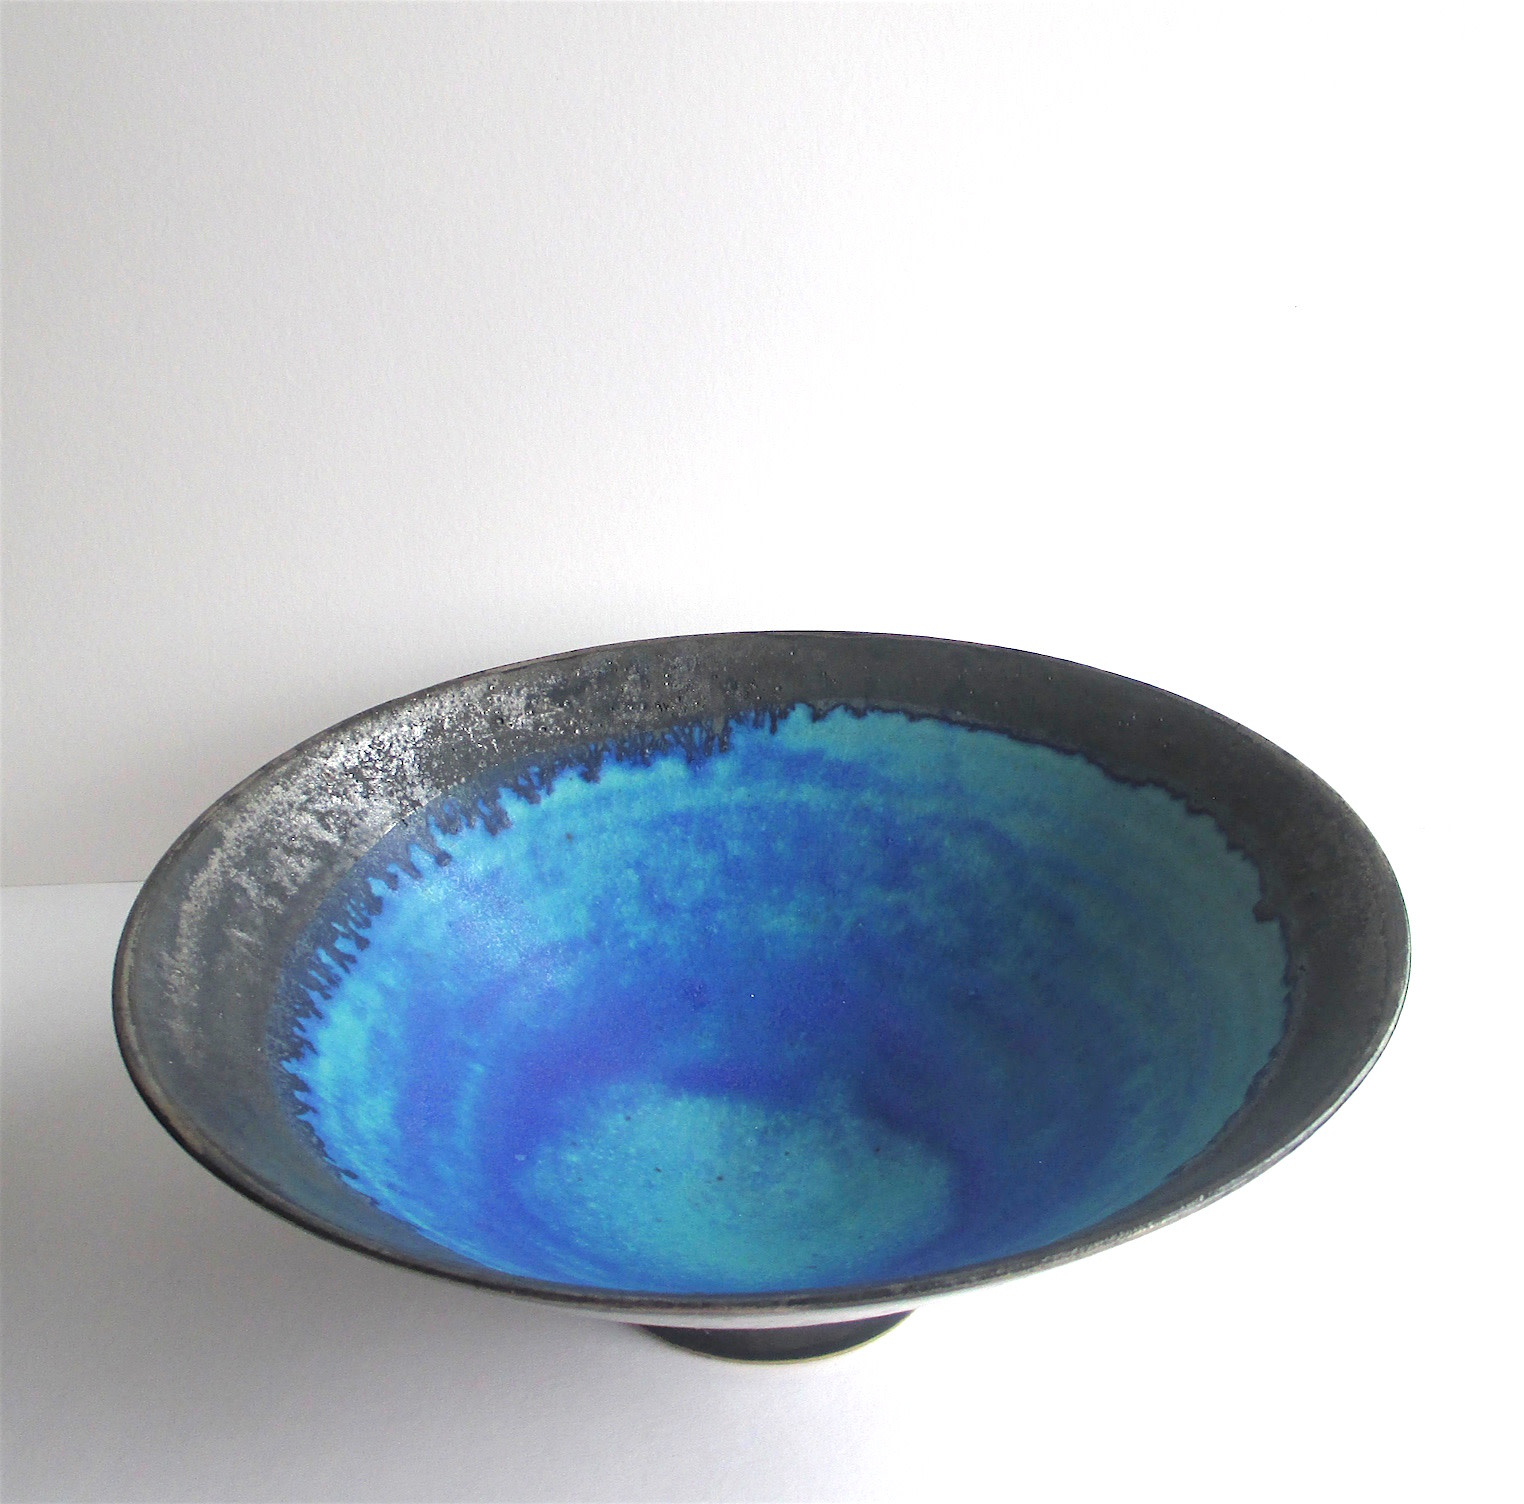 "<span class=""link fancybox-details-link""><a href=""/artists/44-sarah-perry/works/6974-sarah-perry-silver-lustred-blue-pool-bowl-2020/"">View Detail Page</a></span><div class=""artist""><strong>Sarah Perry</strong></div> <div class=""title""><em>Silver lustred Blue Pool Bowl</em>, 2020</div> <div class=""signed_and_dated"">labelled on the bottom</div> <div class=""medium"">Stoneware</div> <div class=""dimensions"">h. 10 x 26 cm </div><div class=""copyright_line"">Own Art: £ 36.30 x 10 Months, 0% APR</div>"